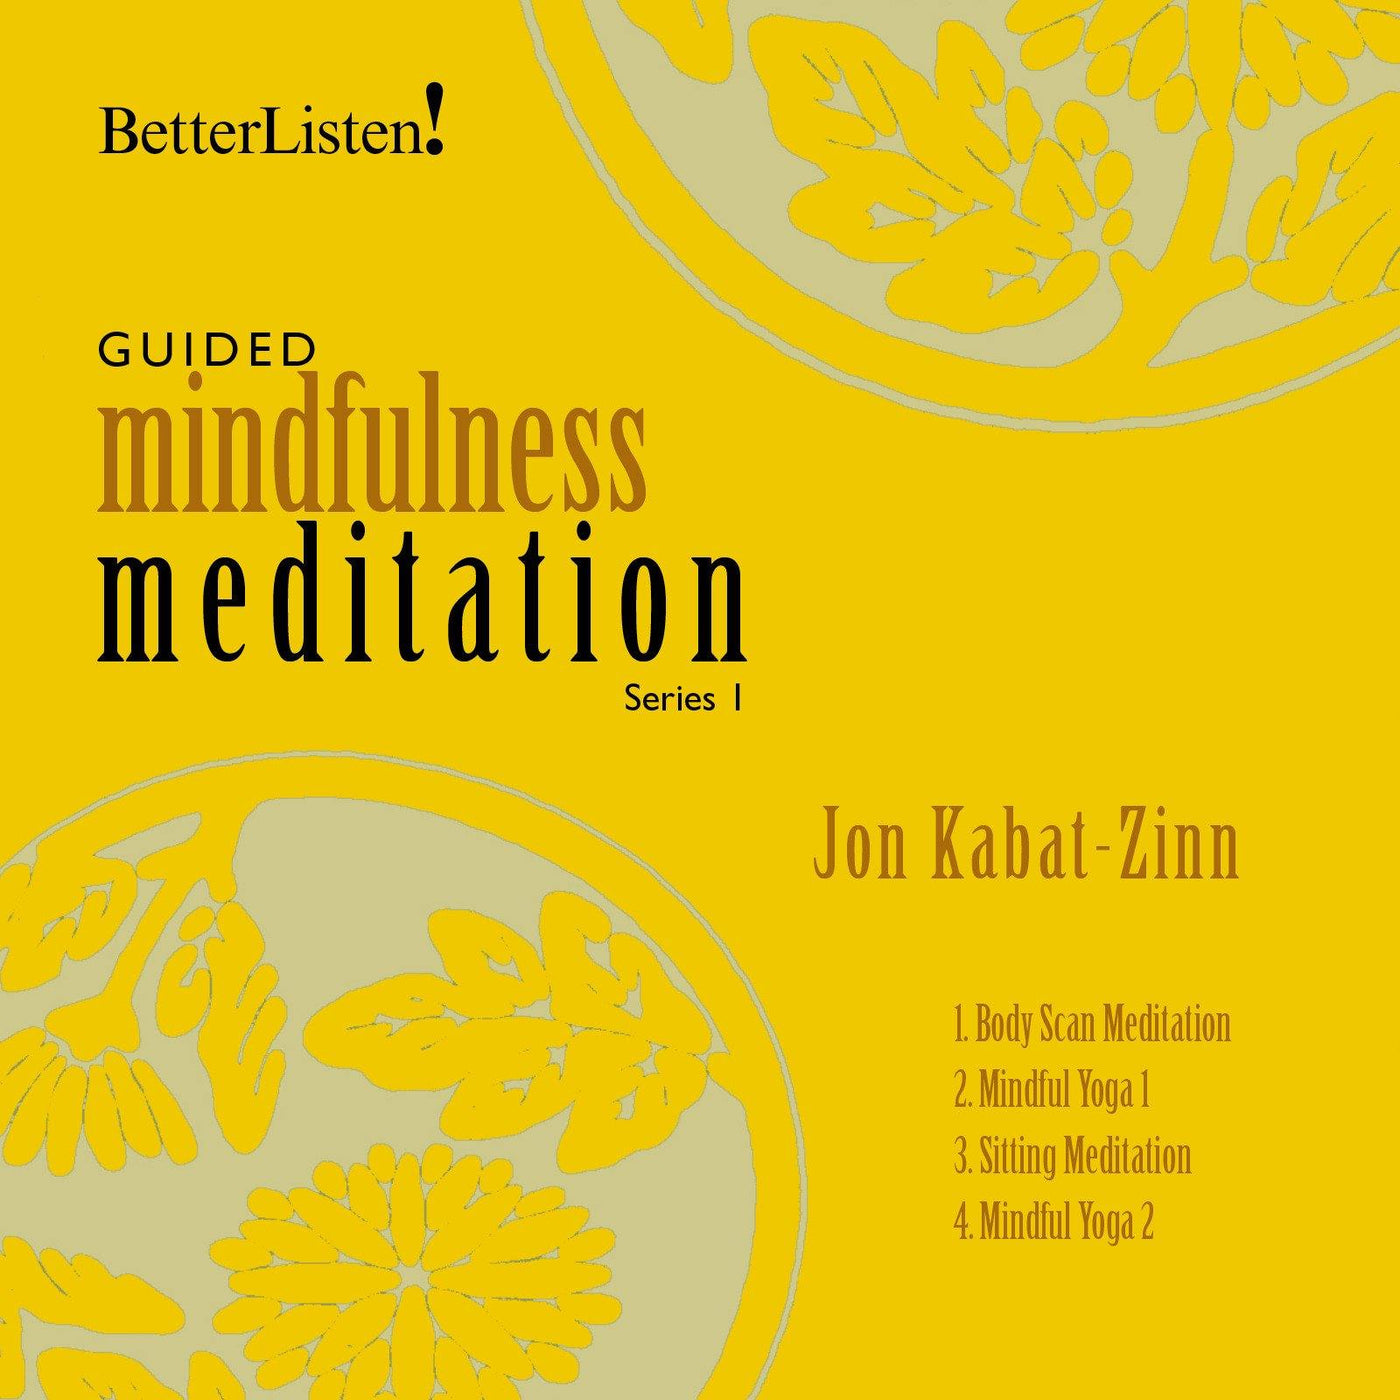 Jon kabat-zinn, phd – guided mindfulness meditation series 1.